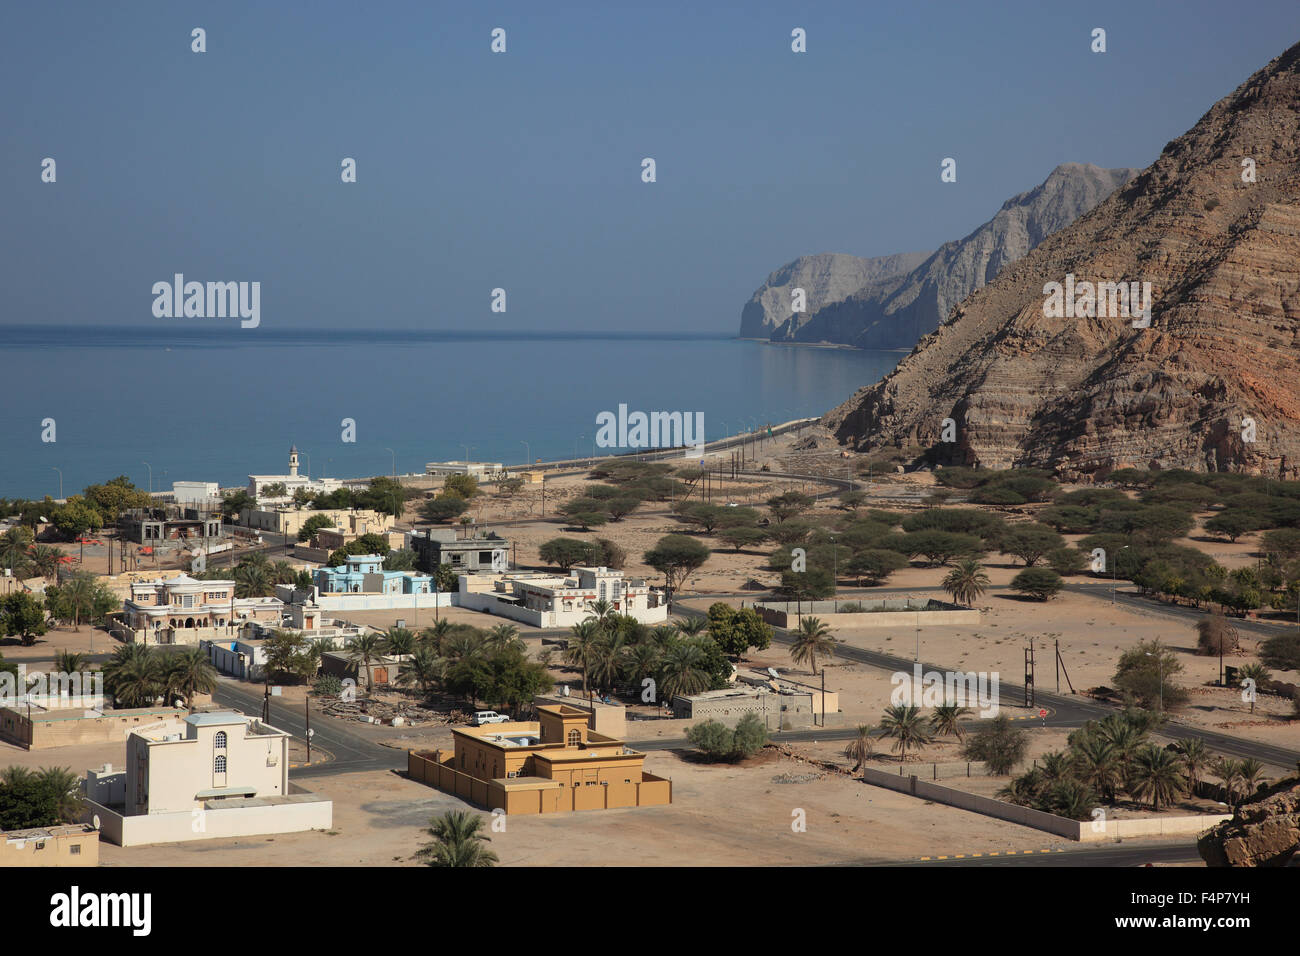 Bay of Bukha, in the granny's niches enclave of Musandam, Oman Stock Photo